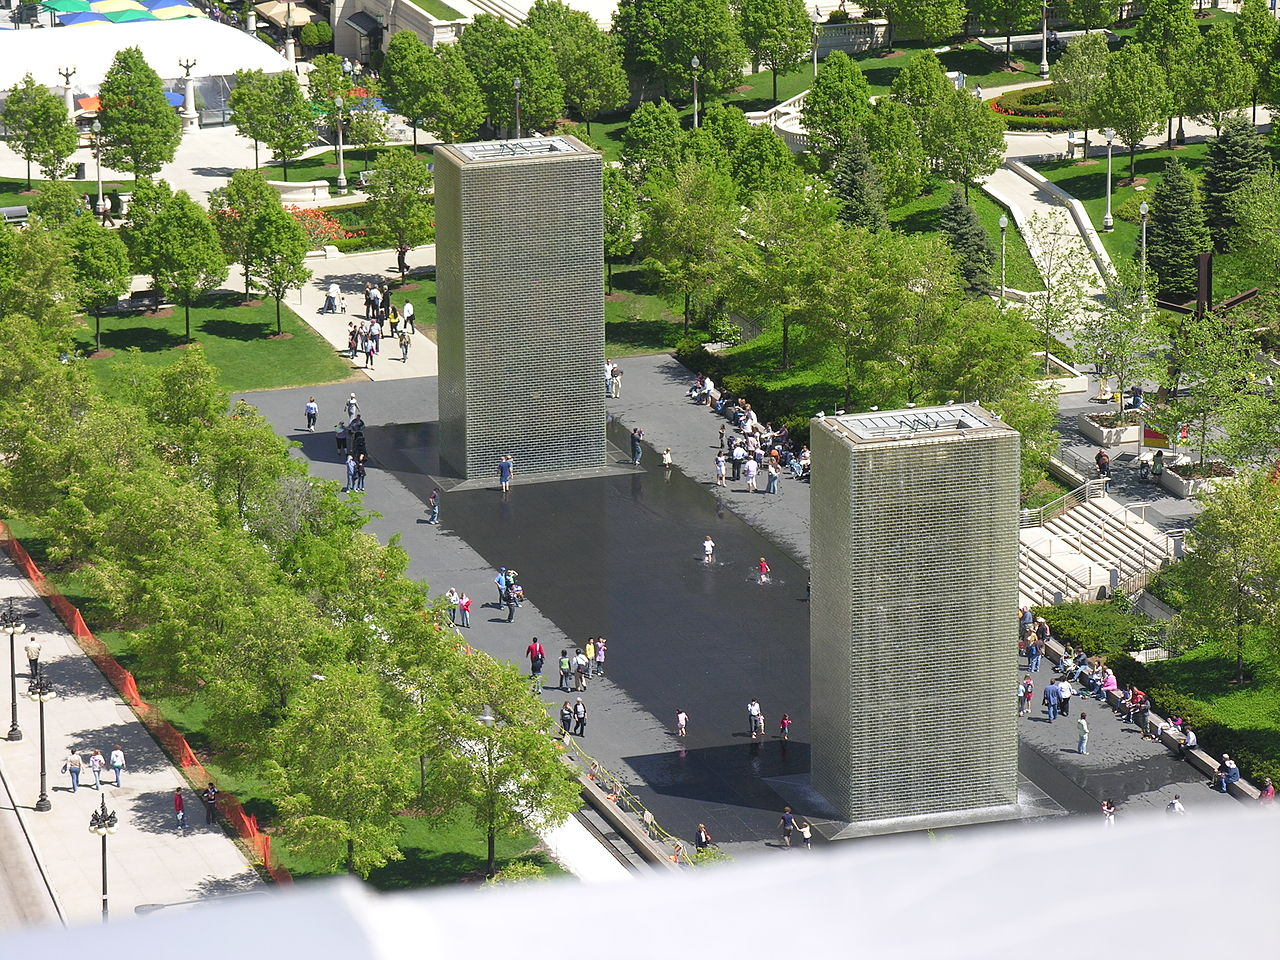 View of the fountain shows glass brick towers from rooftop nearby.